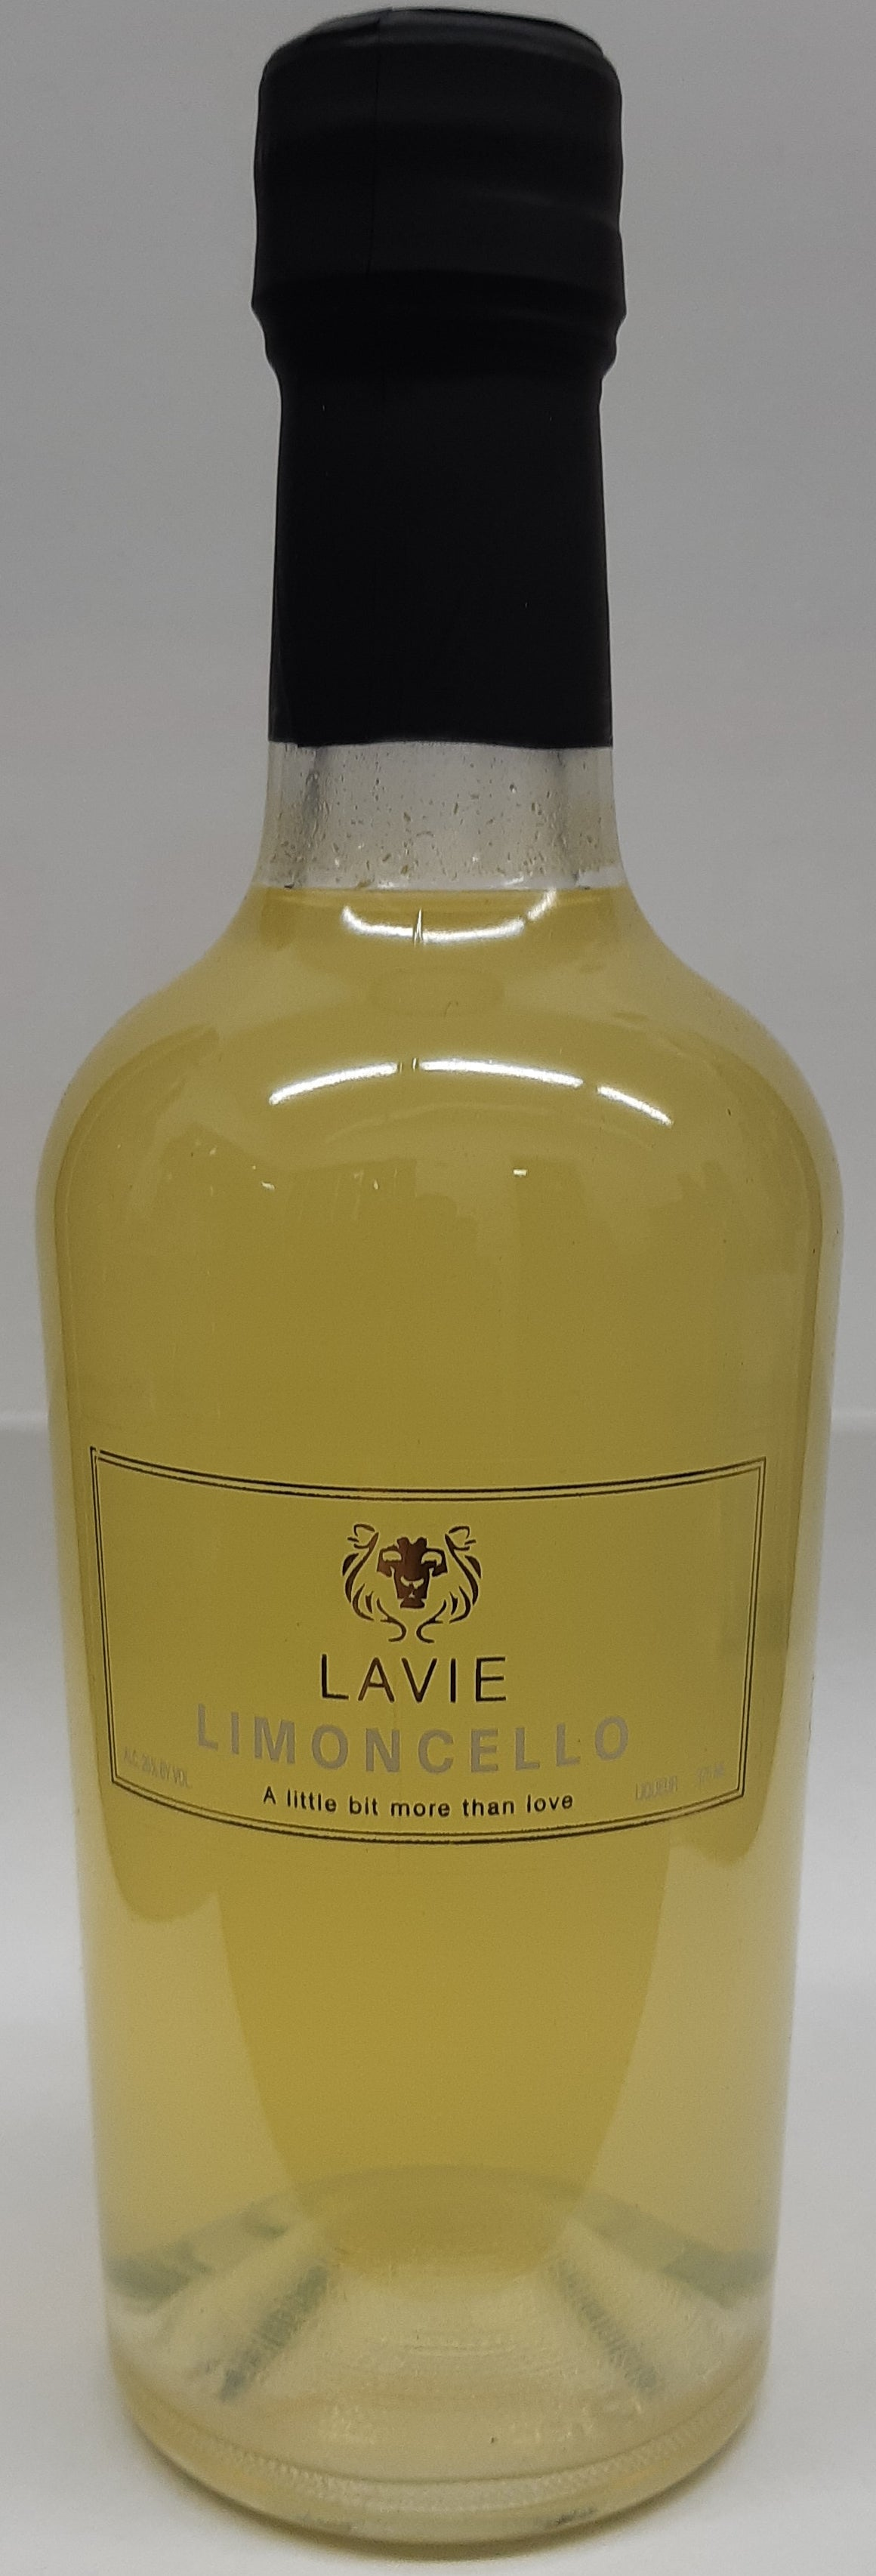 Lavie Limoncello Supreme Liqueur 375Ml